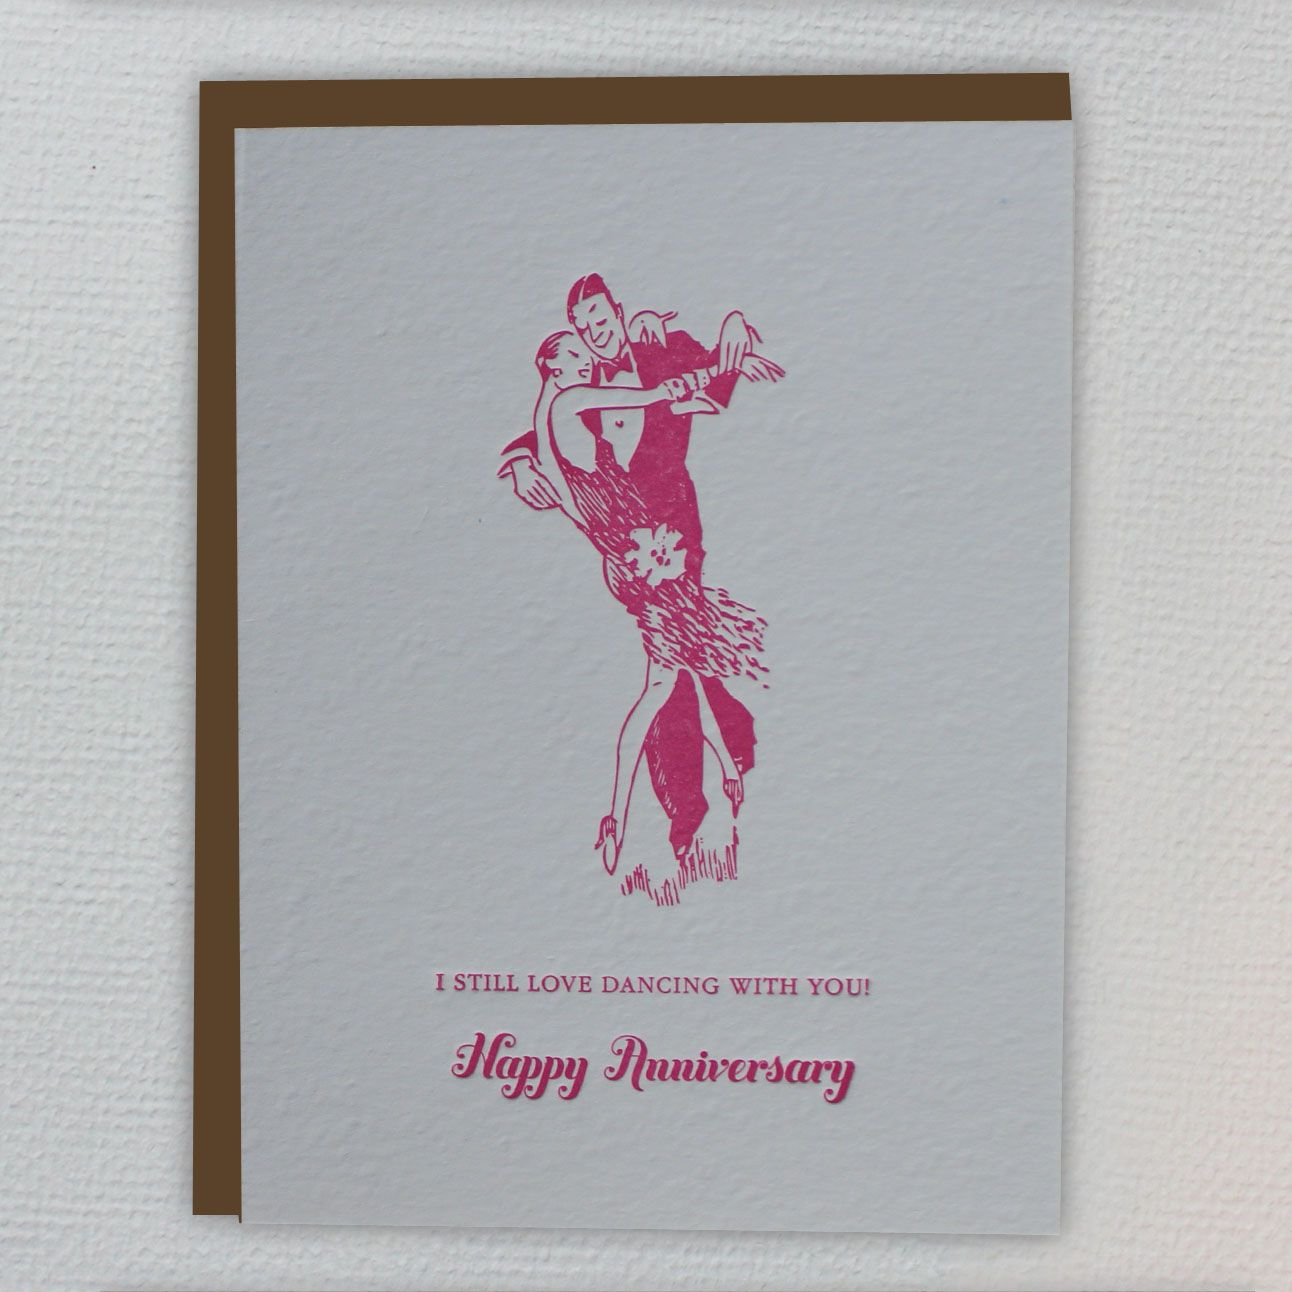 I still love dancing with you happy anniversary greeting card i still love dancing with you happy anniversary greeting card letterpress kristyandbryce Gallery